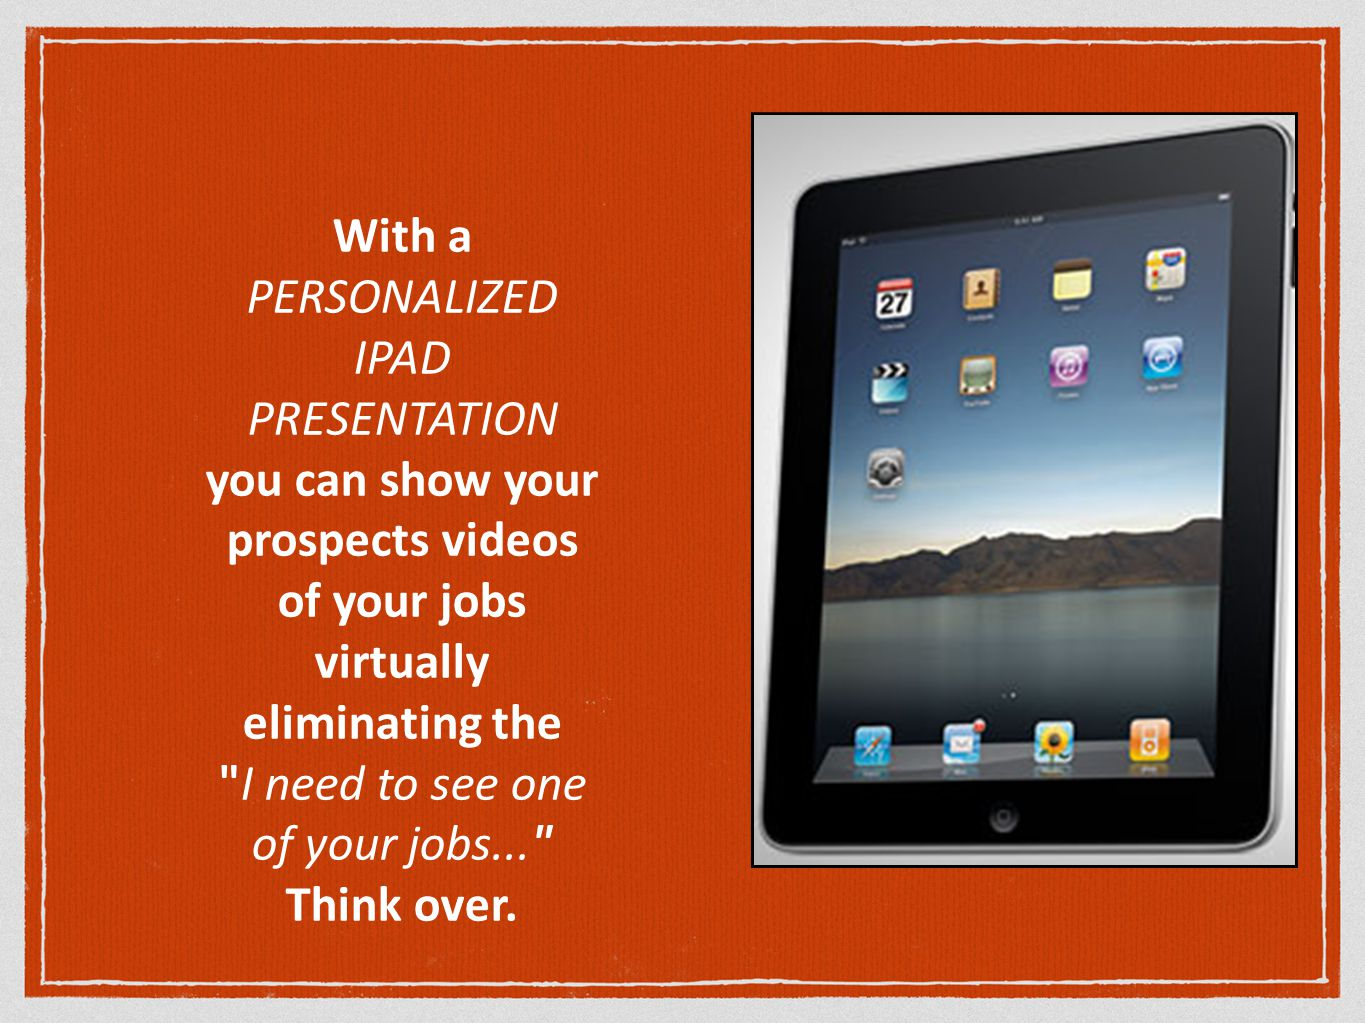 With a PERSONALIZED IPAD PRESENTATION you can show your prospects videos of your jobs virtually eliminating the I need to see one of your jobs... Think over.